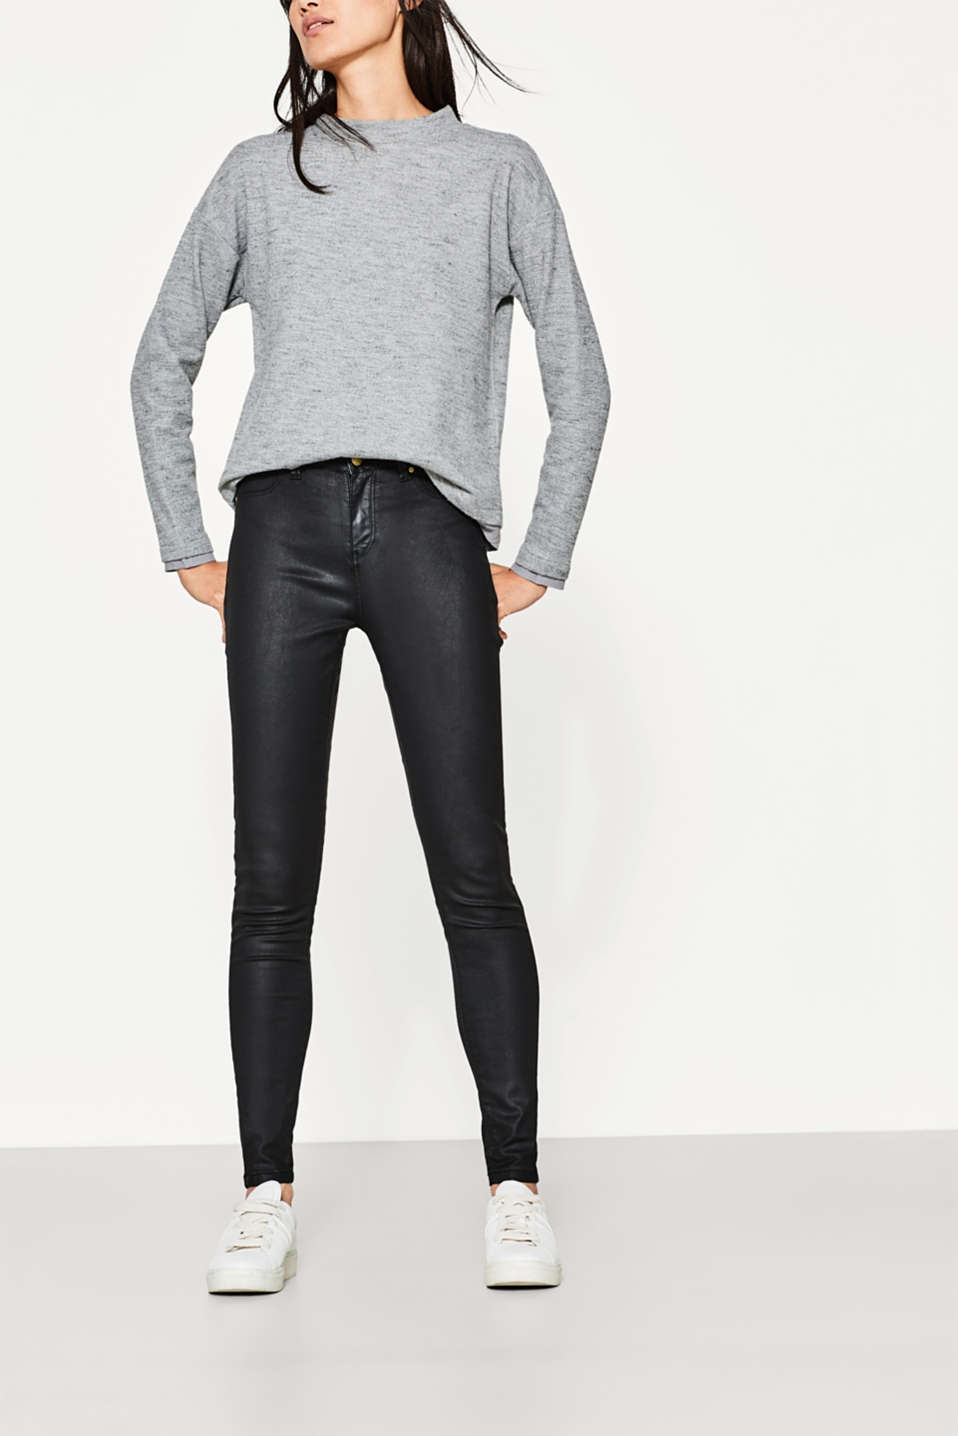 Esprit - Coated jeans + a high percentage of stretch